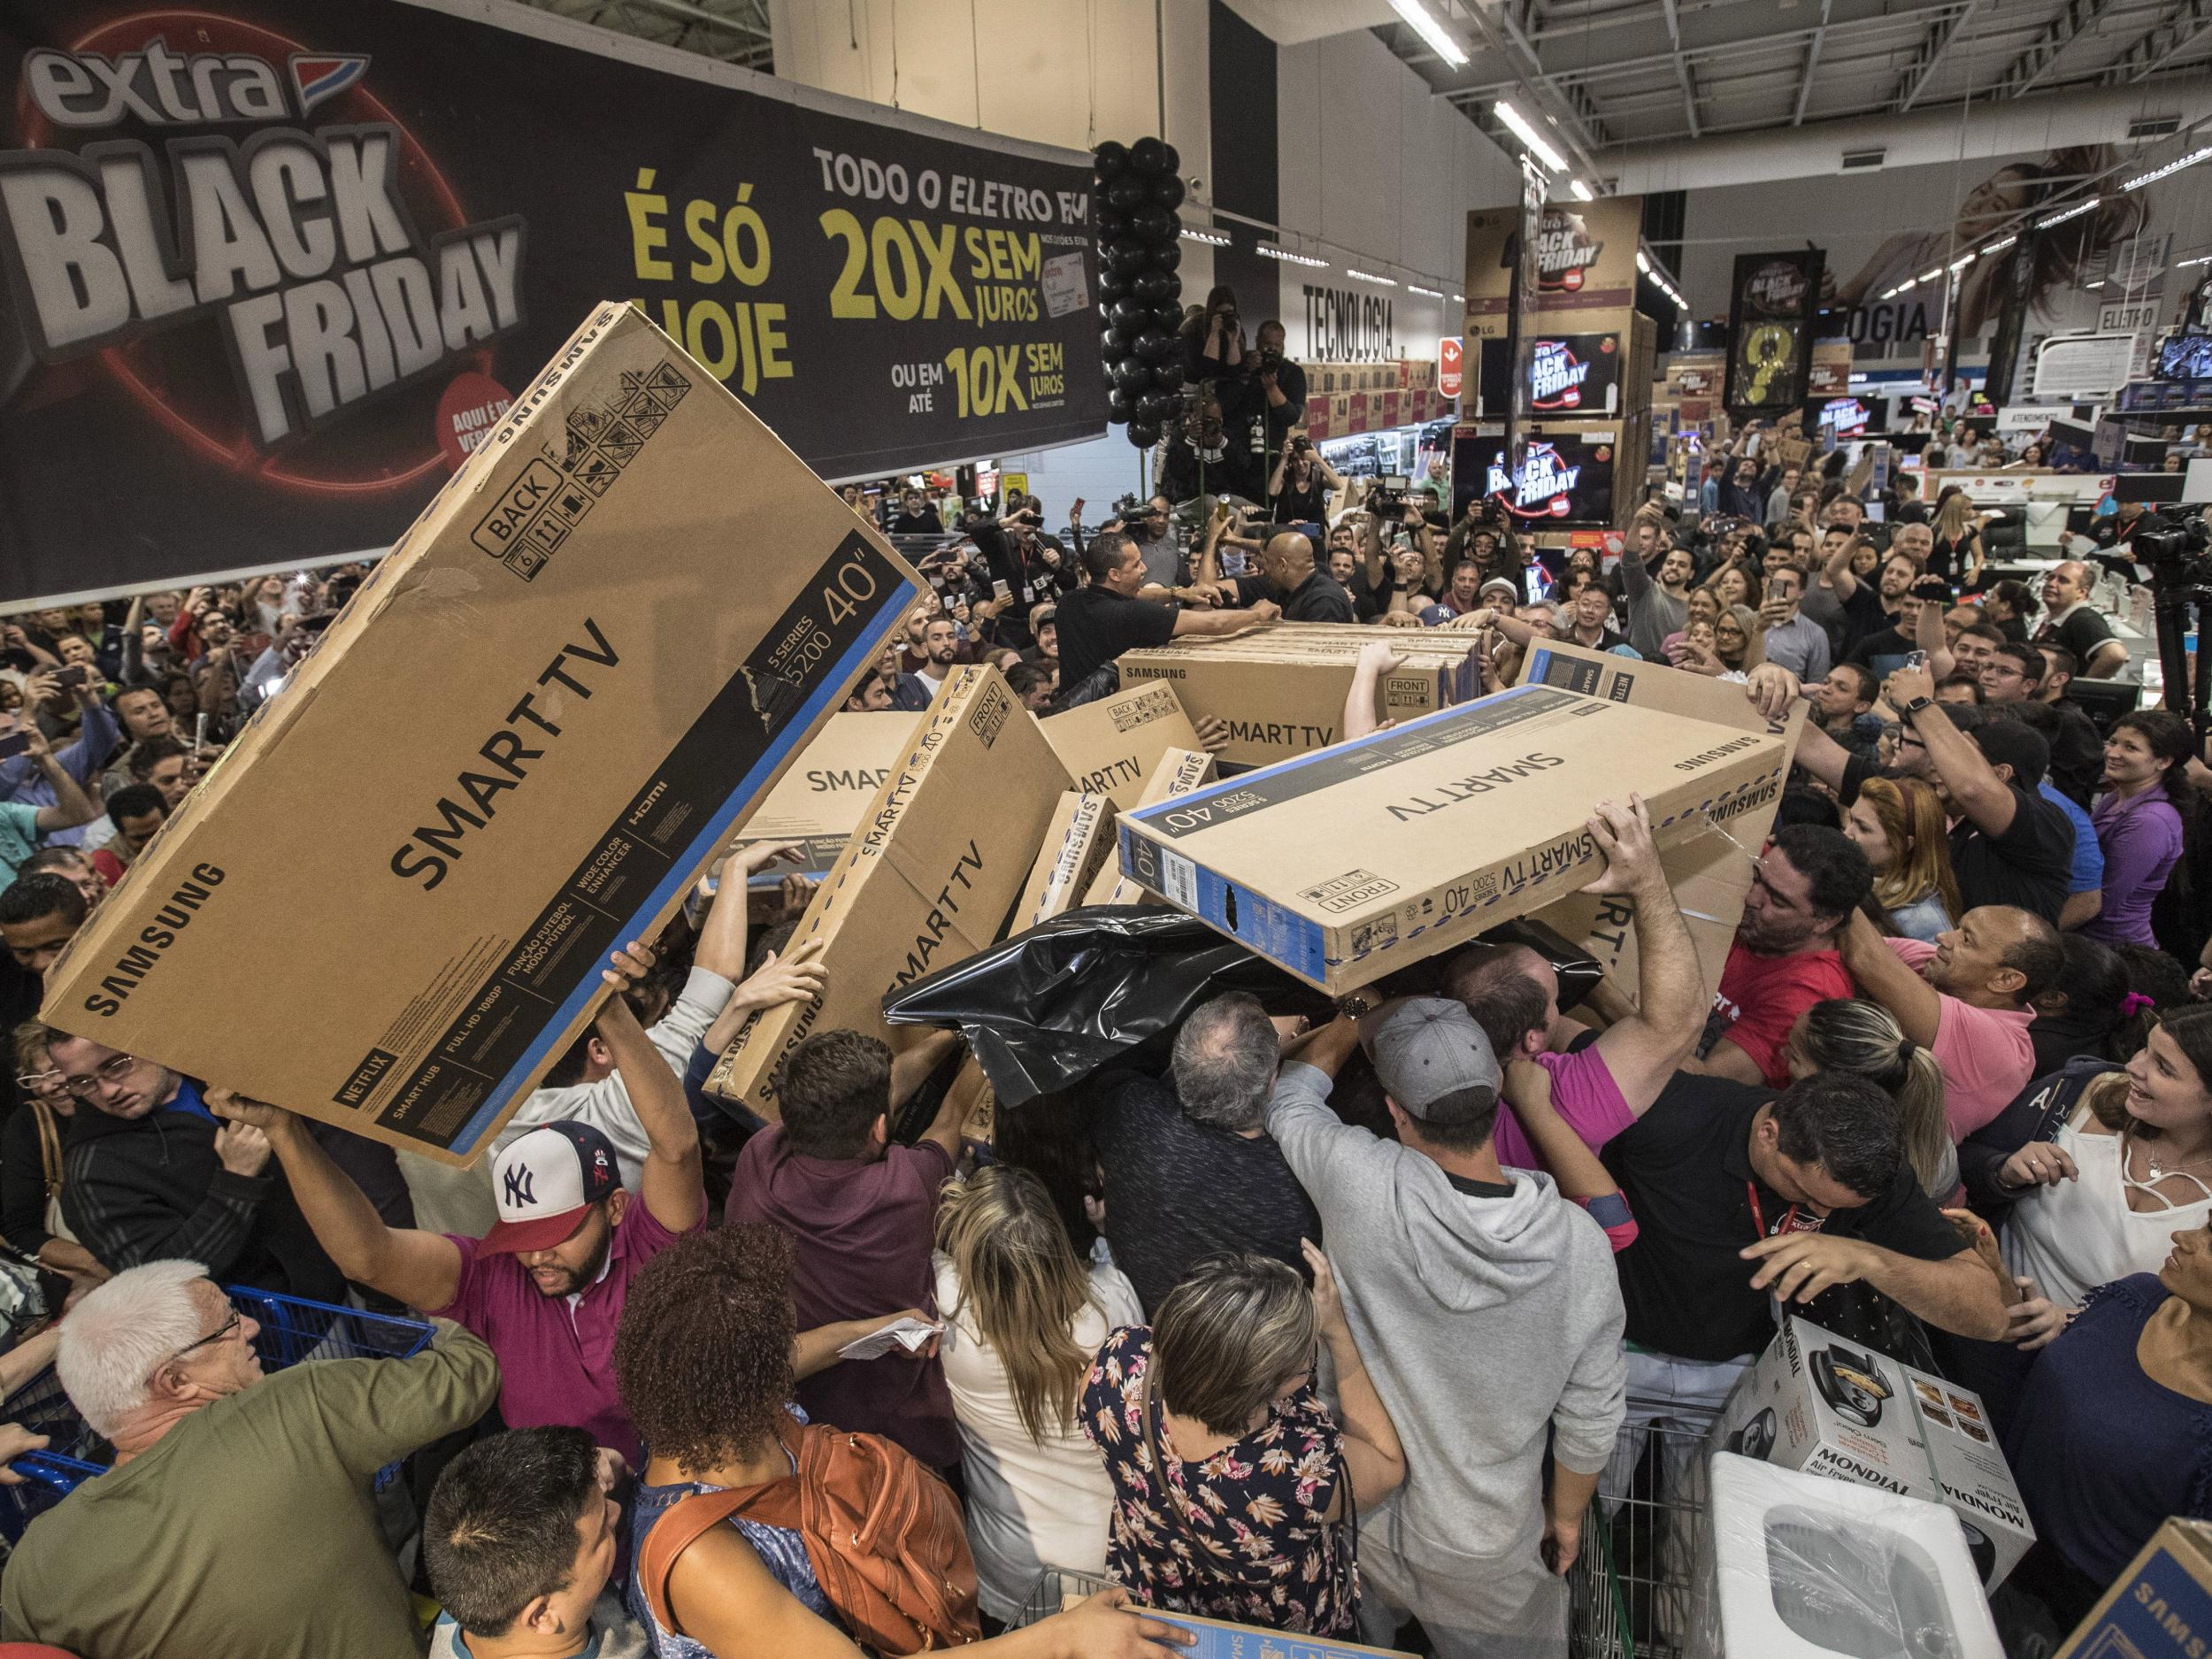 black friday 2017 chaos as huge crowds of shoppers in brazil scuffle over discount tvs the. Black Bedroom Furniture Sets. Home Design Ideas